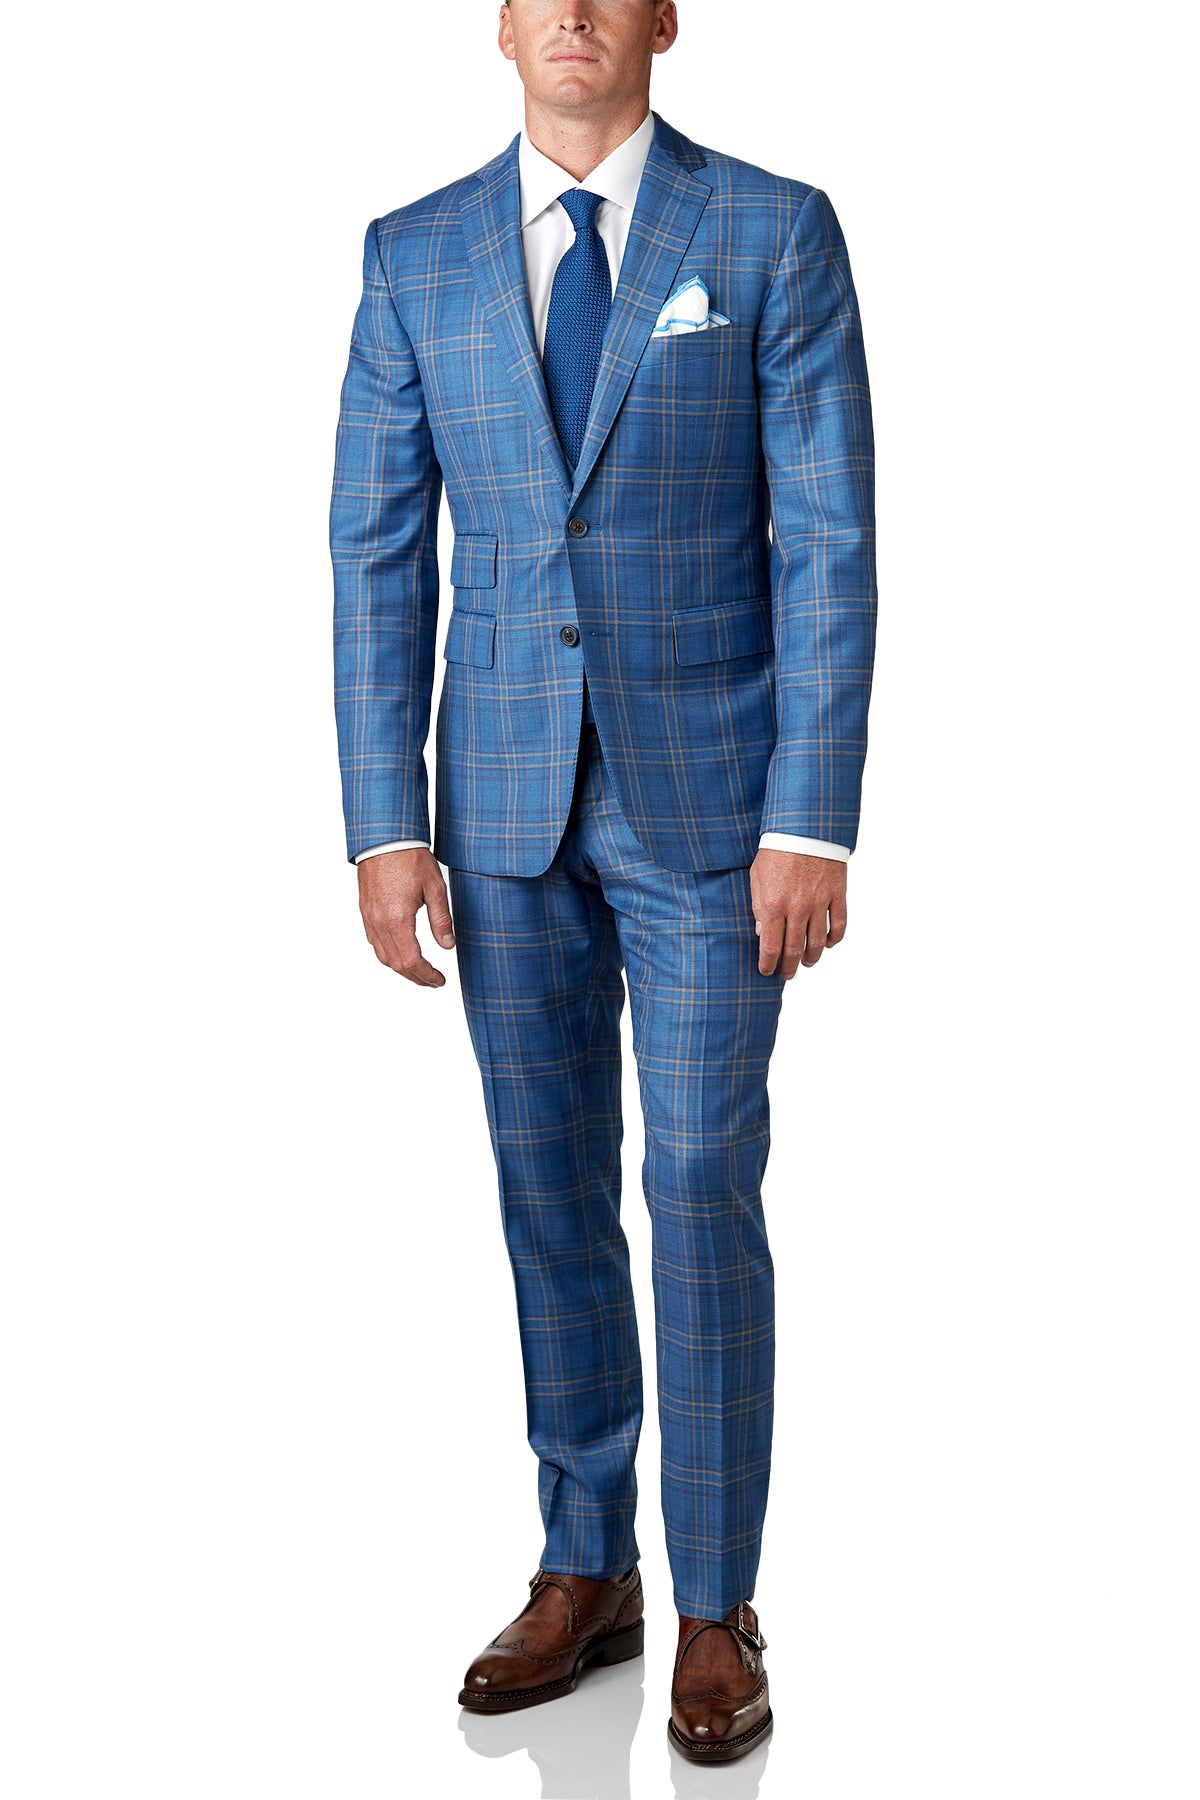 David August | Luxury Custom Made Men\'s Suits – David August, Inc.